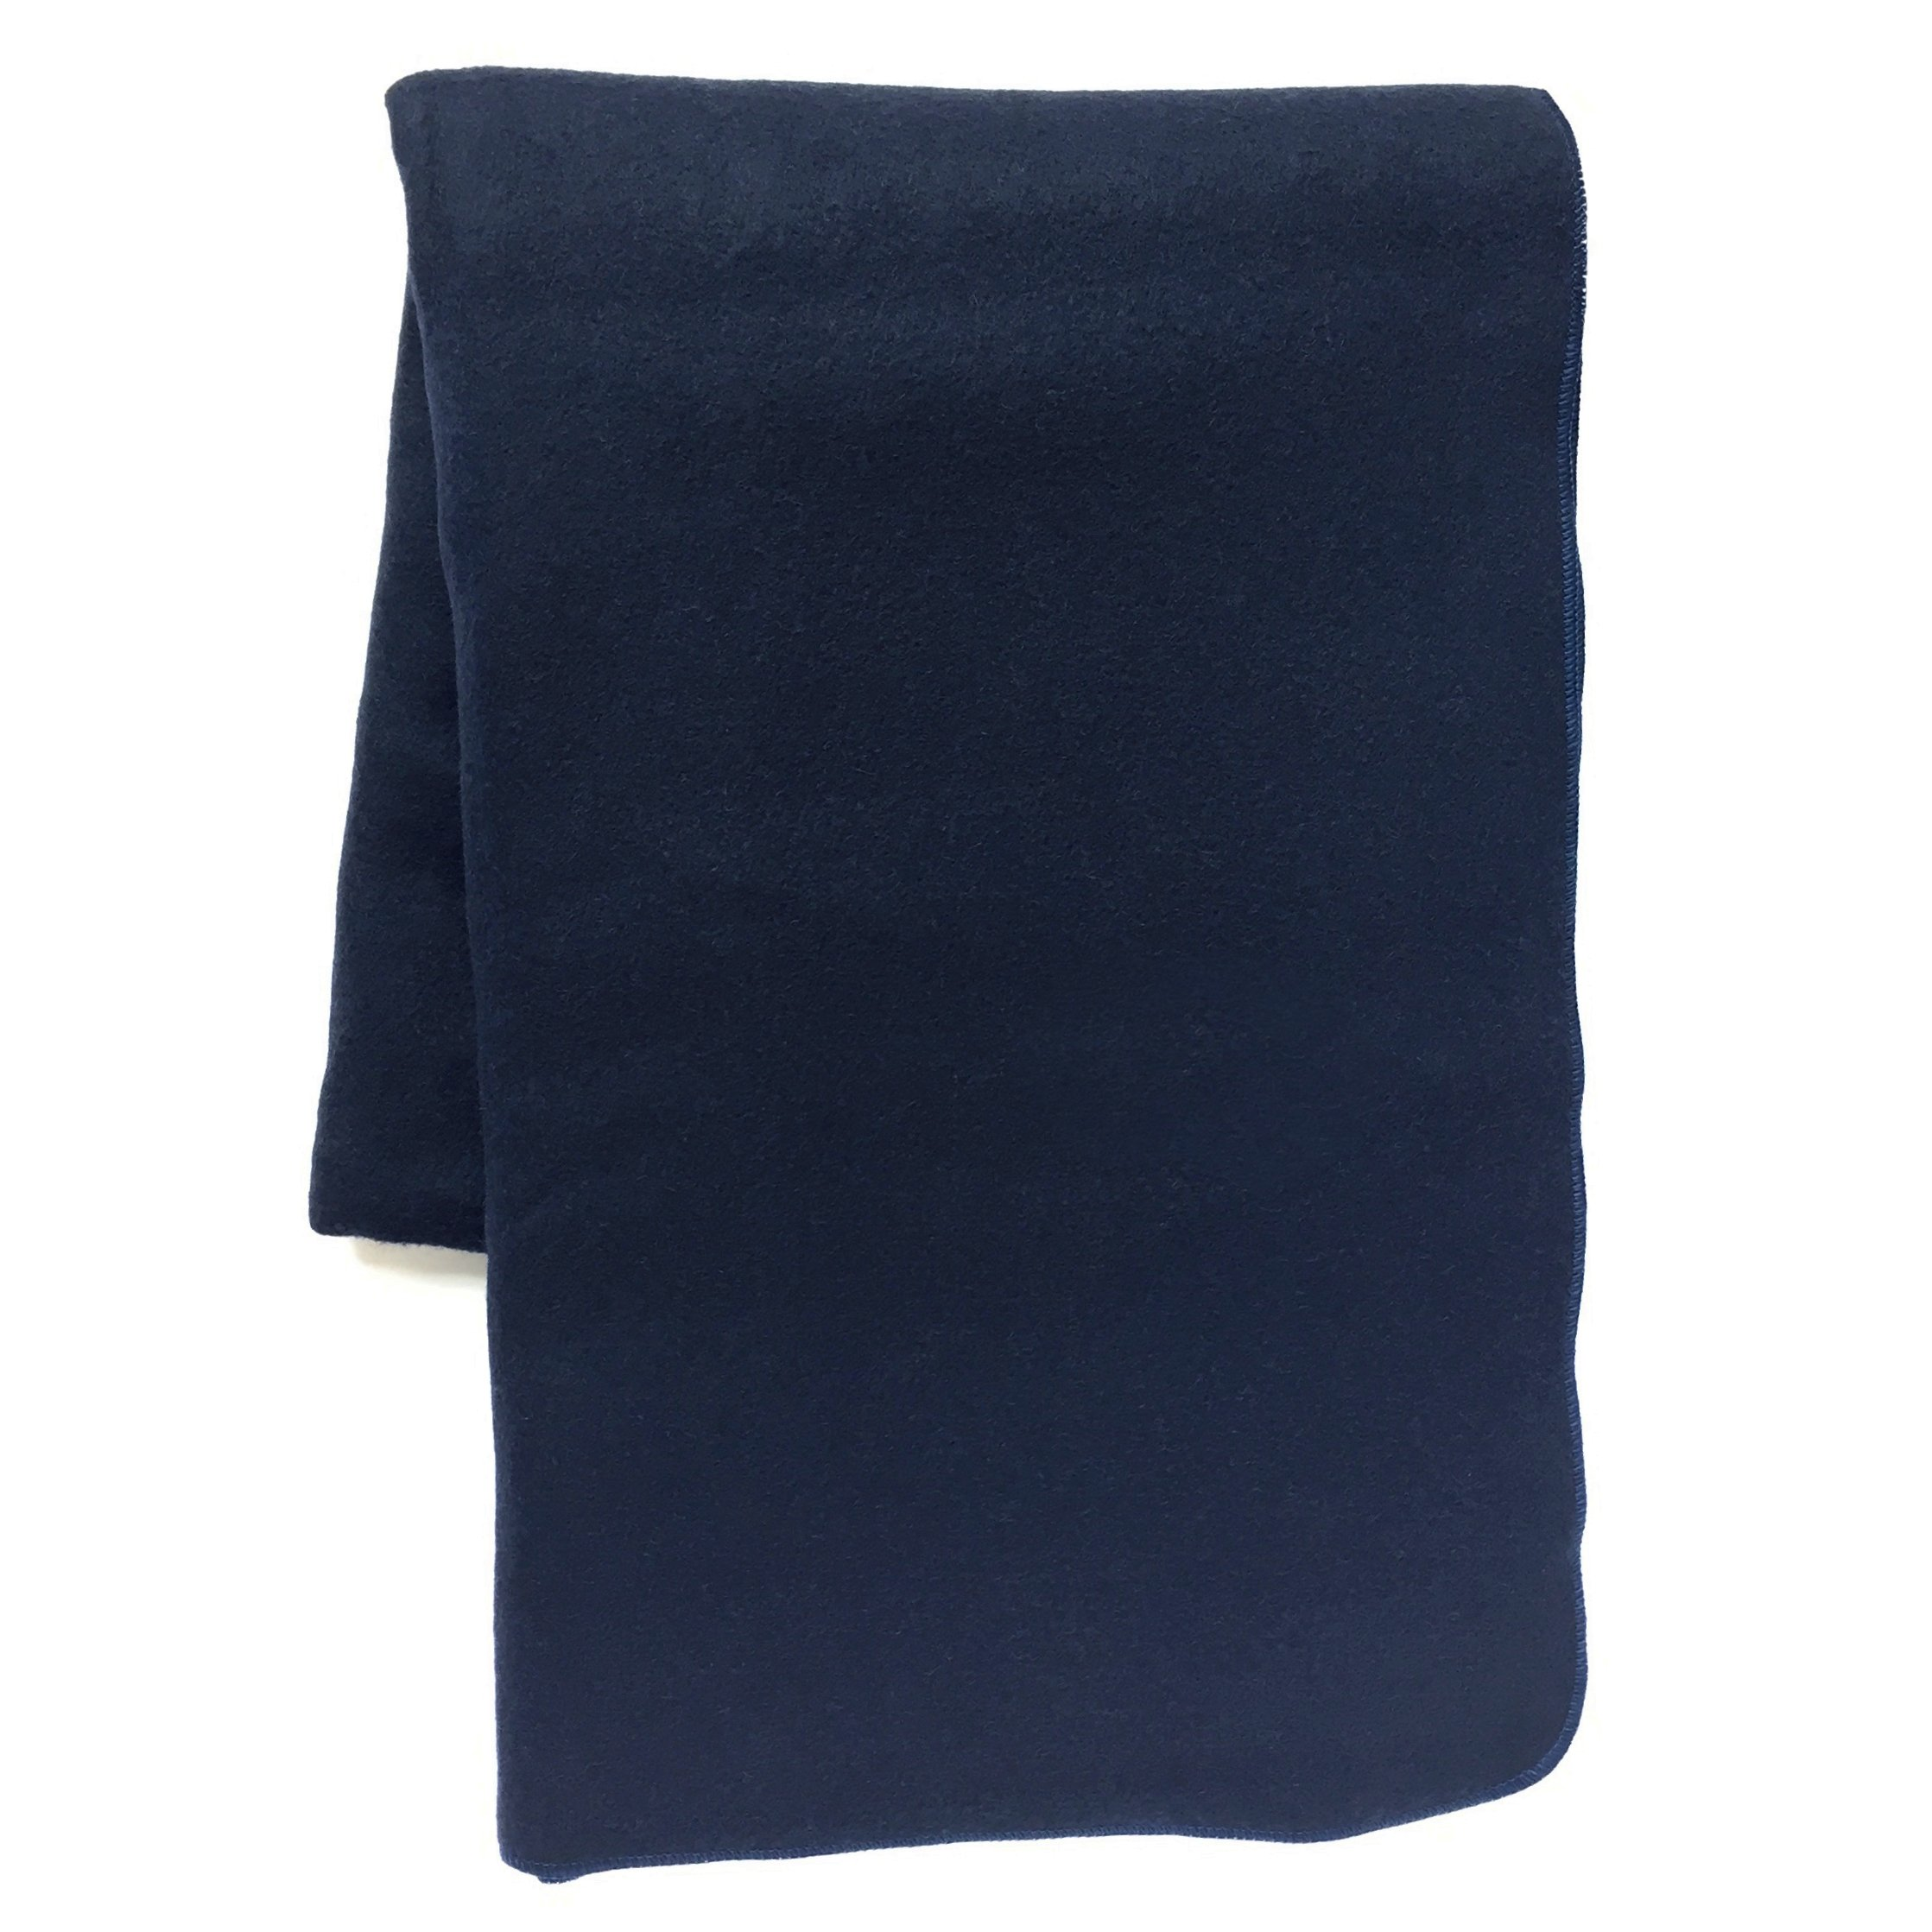 EKTOS 100% Wool Blanket, Navy Blue, Warm & Heavy 5.5 lbs, Large Washable 66''x90'' Size, Perfect for Outdoor Camping, Survival & Emergency Preparedness Use by EKTOS (Image #6)